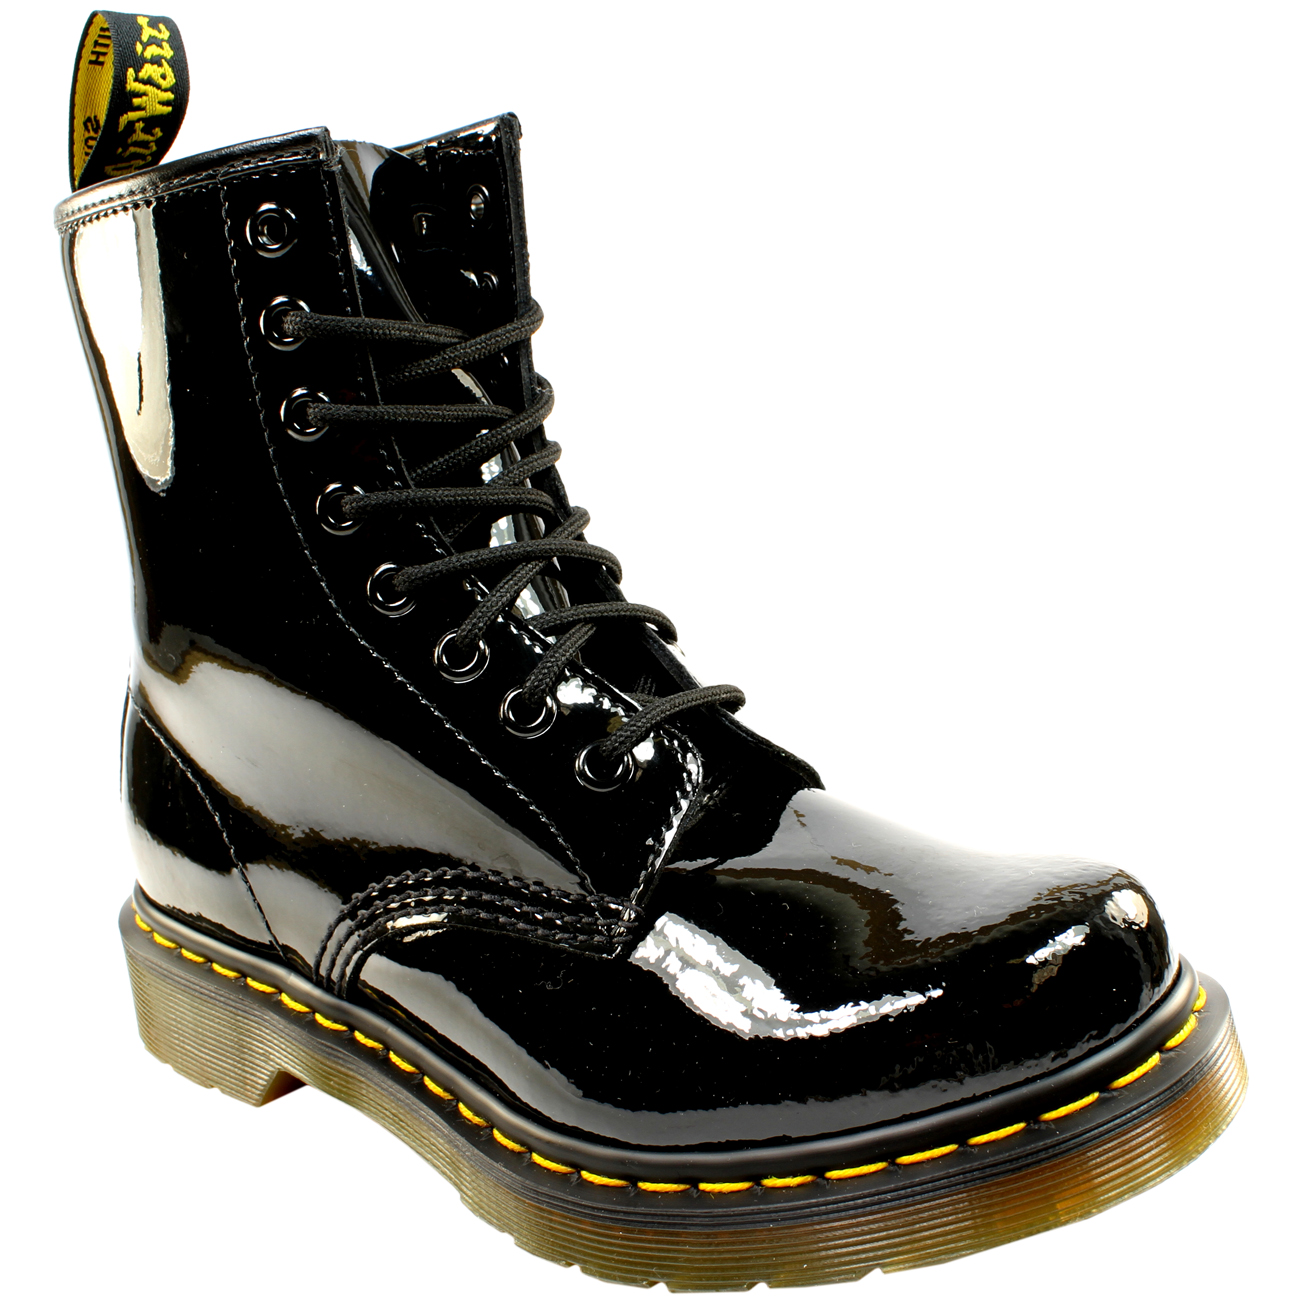 Details about Womens Dr Martens 1460 W 8 Eyelet Patent Lamper Army Combat  Lace Up Boot US 5-10 b75d4b4d8